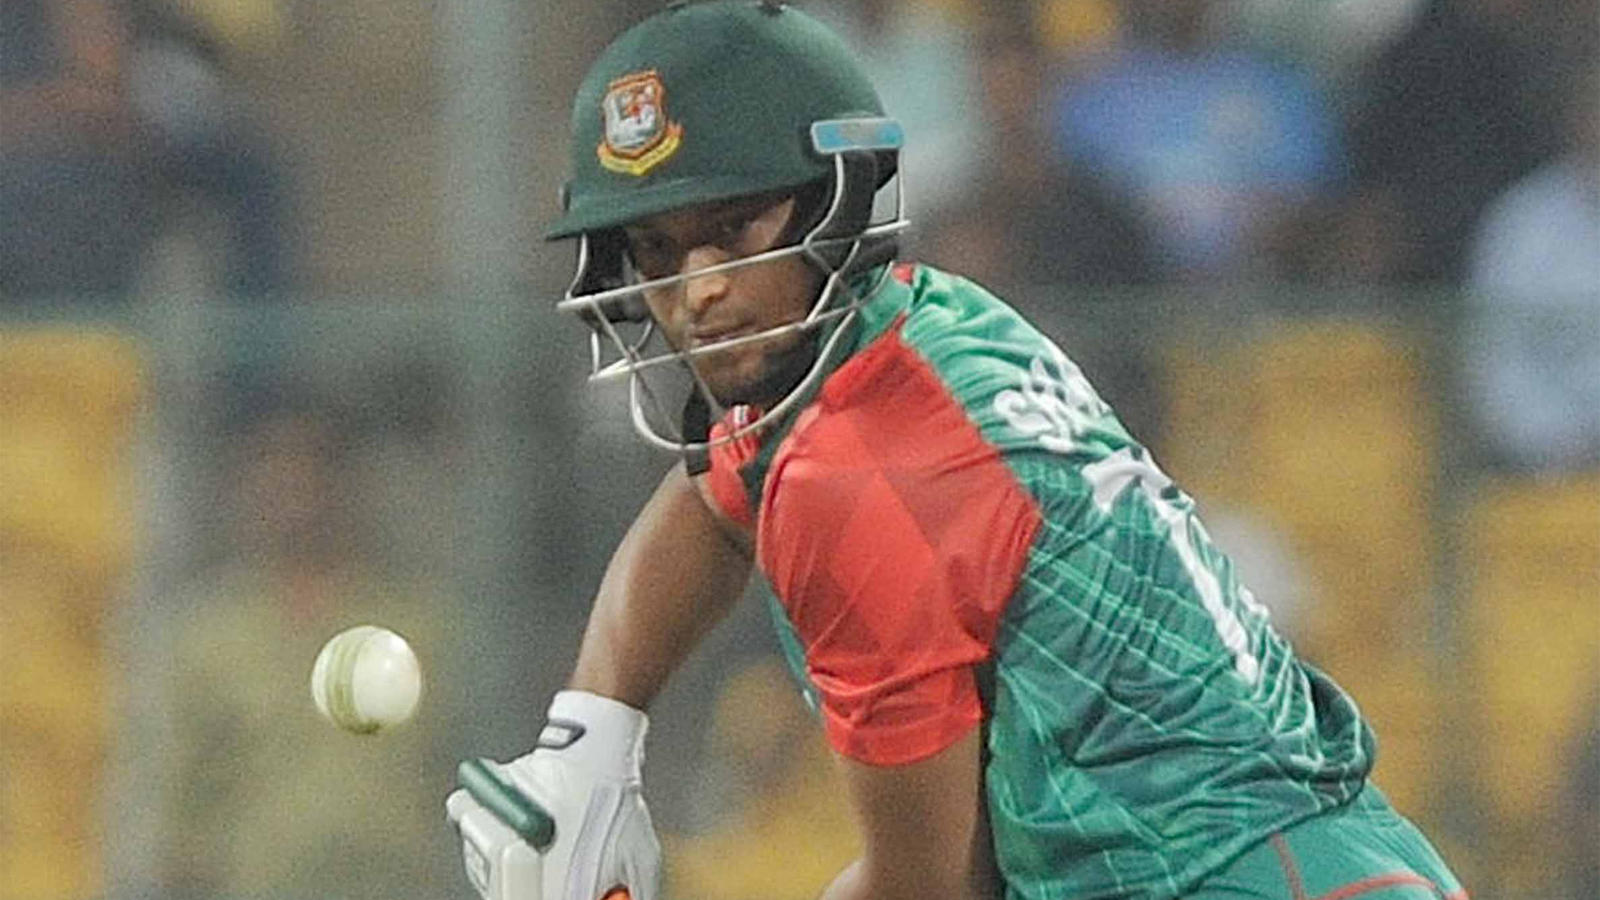 shakibs-absence-will-give-opportunity-to-younger-players-bangladesh-head-coach